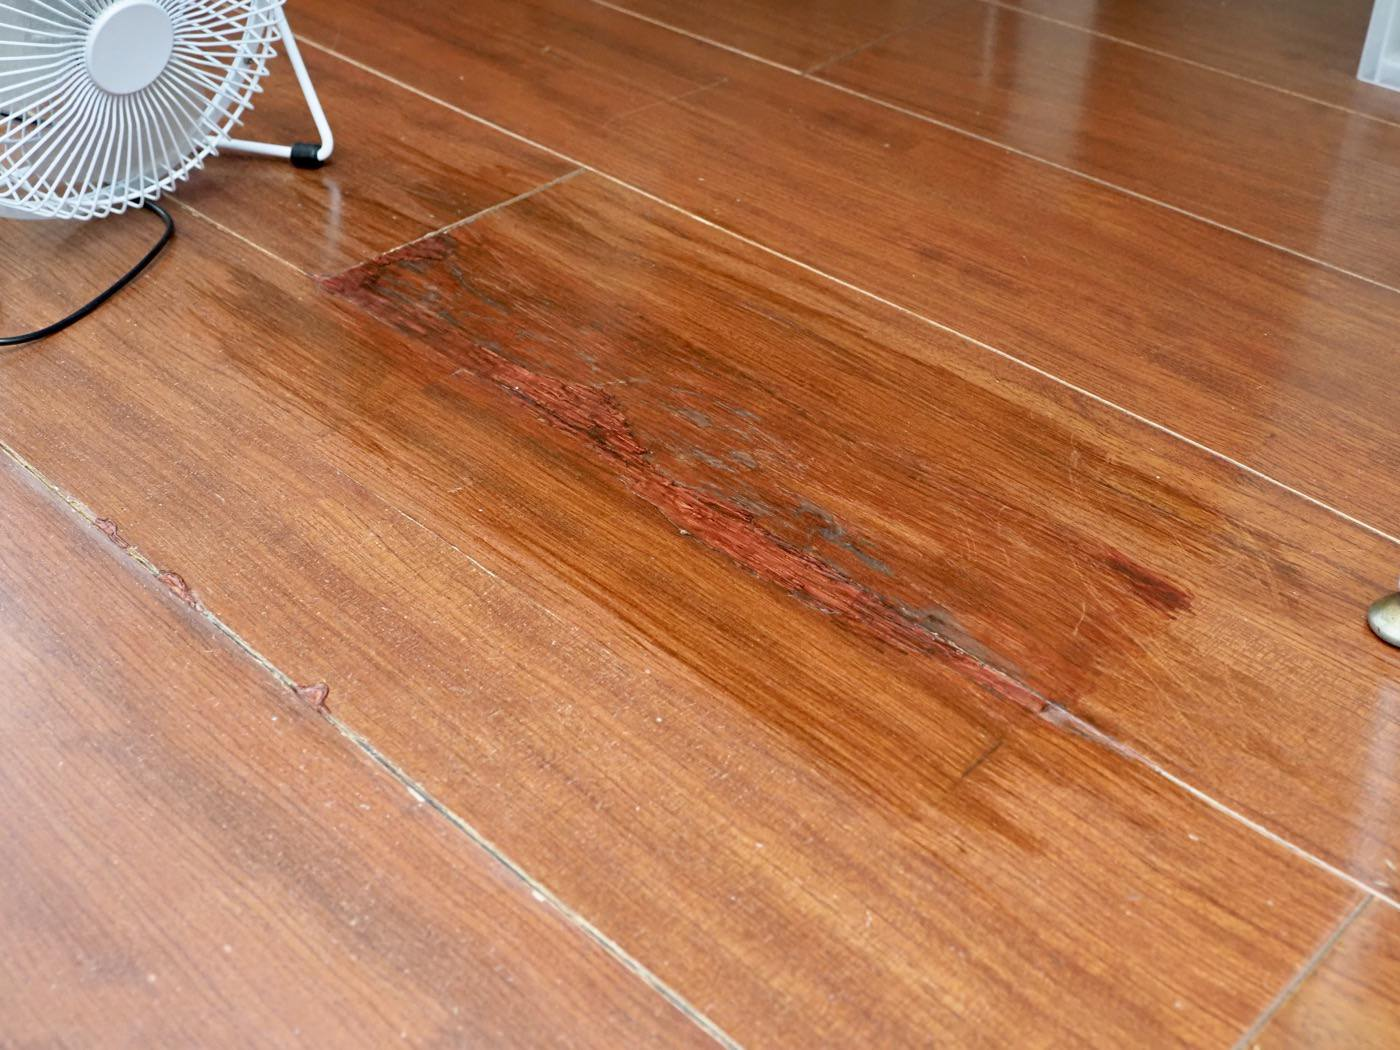 Repaired badly cracked flooring with diy 00014